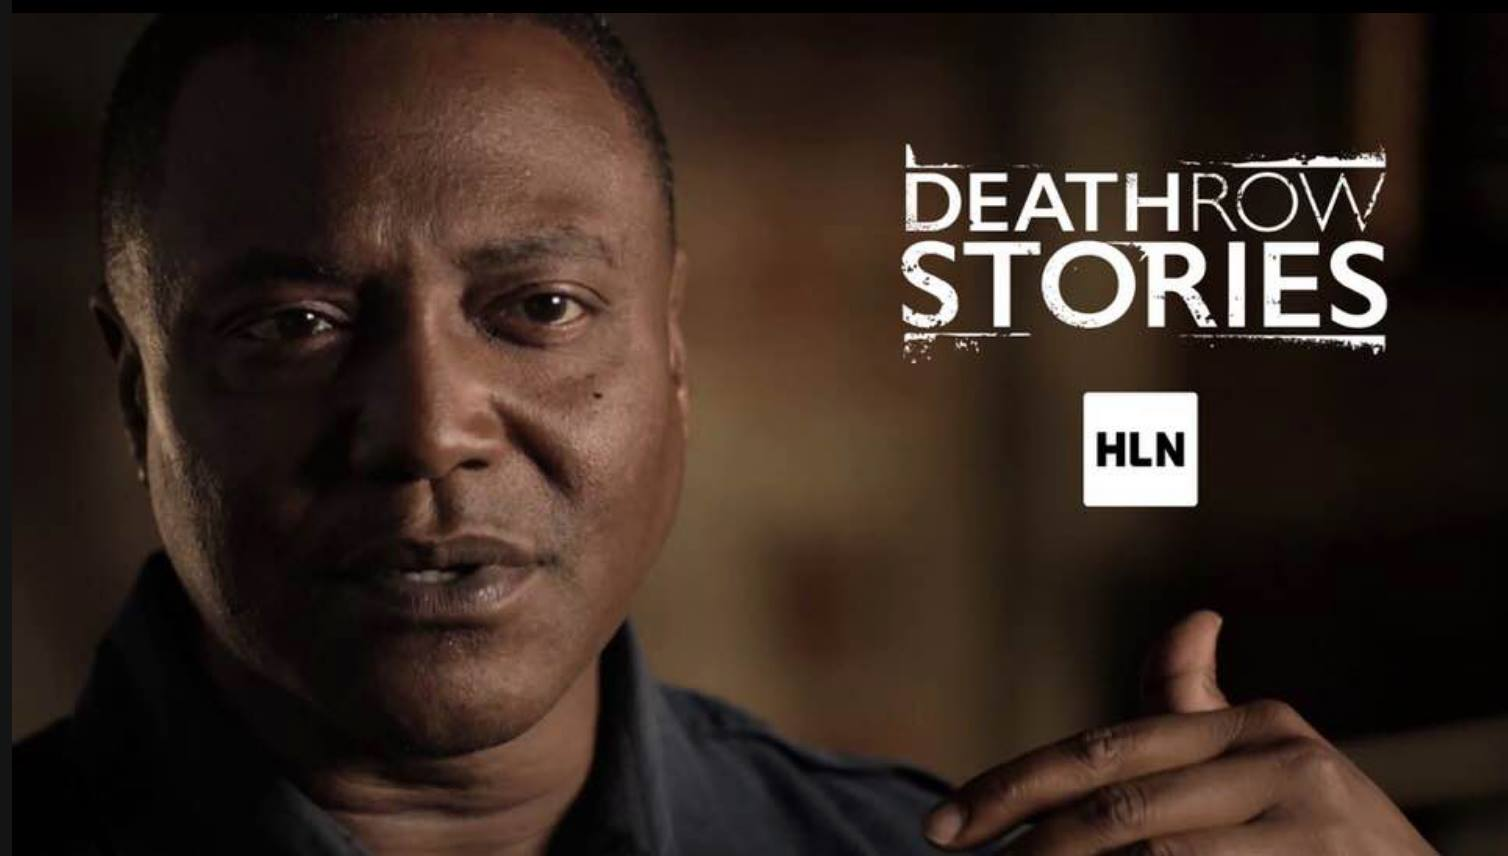 Screening of Death Row Stories: Family Lies